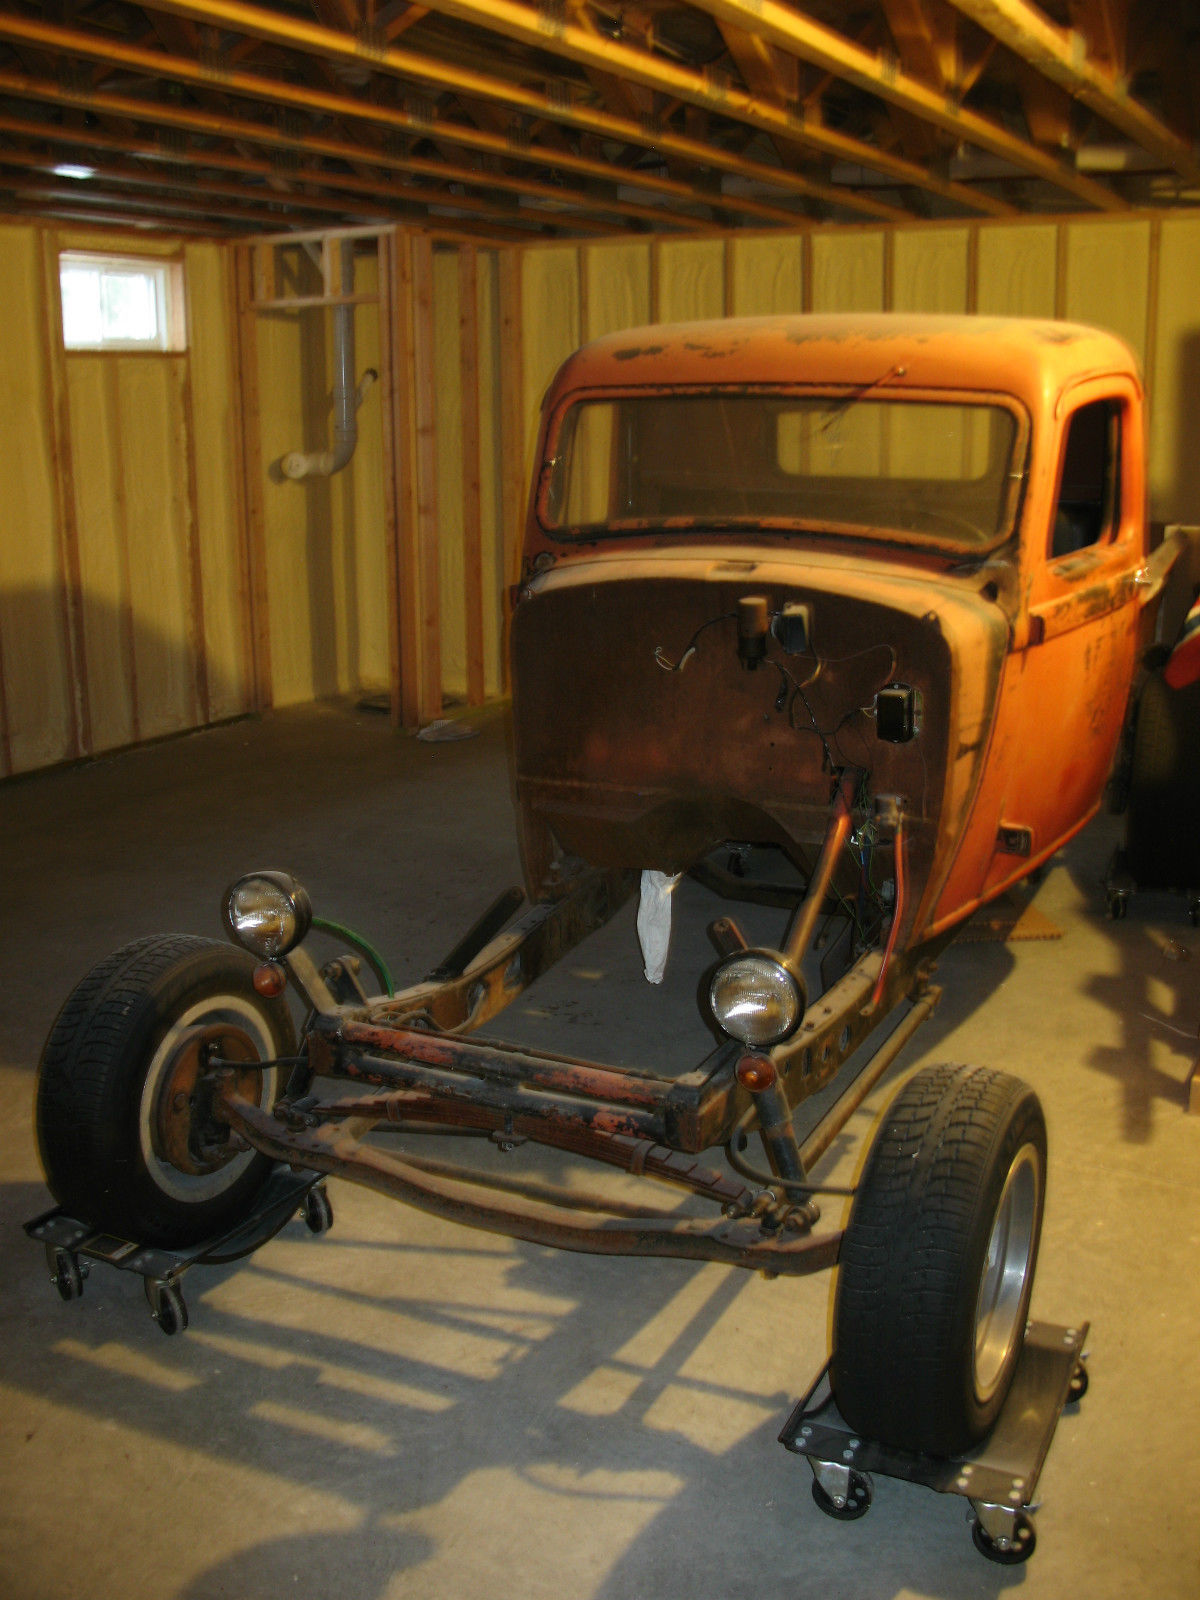 Build A Dodge Truck >> 1935 Dodge Brothers Pickup Project Hot Rod Rat 318 Poly D2 1936 Ford Flathead 37 - Classic Dodge ...